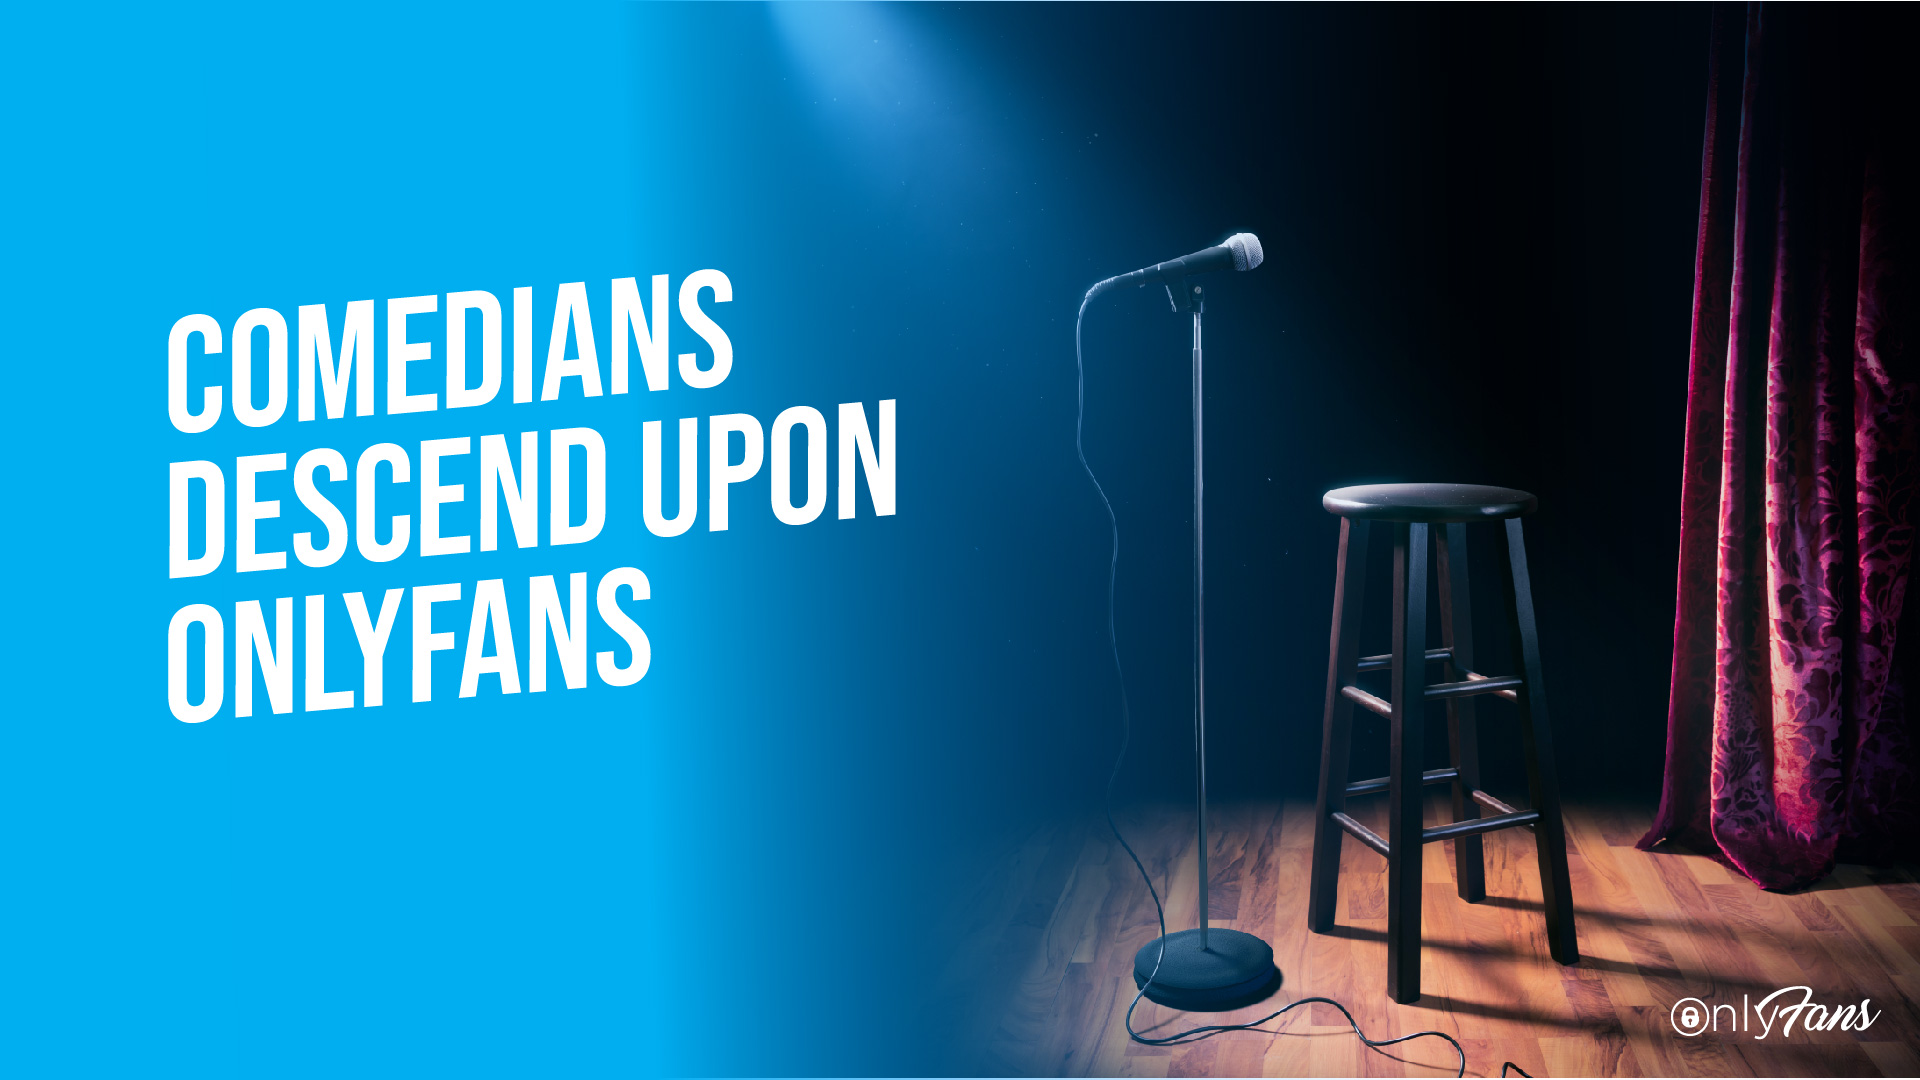 comedians descend upon OnlyFans